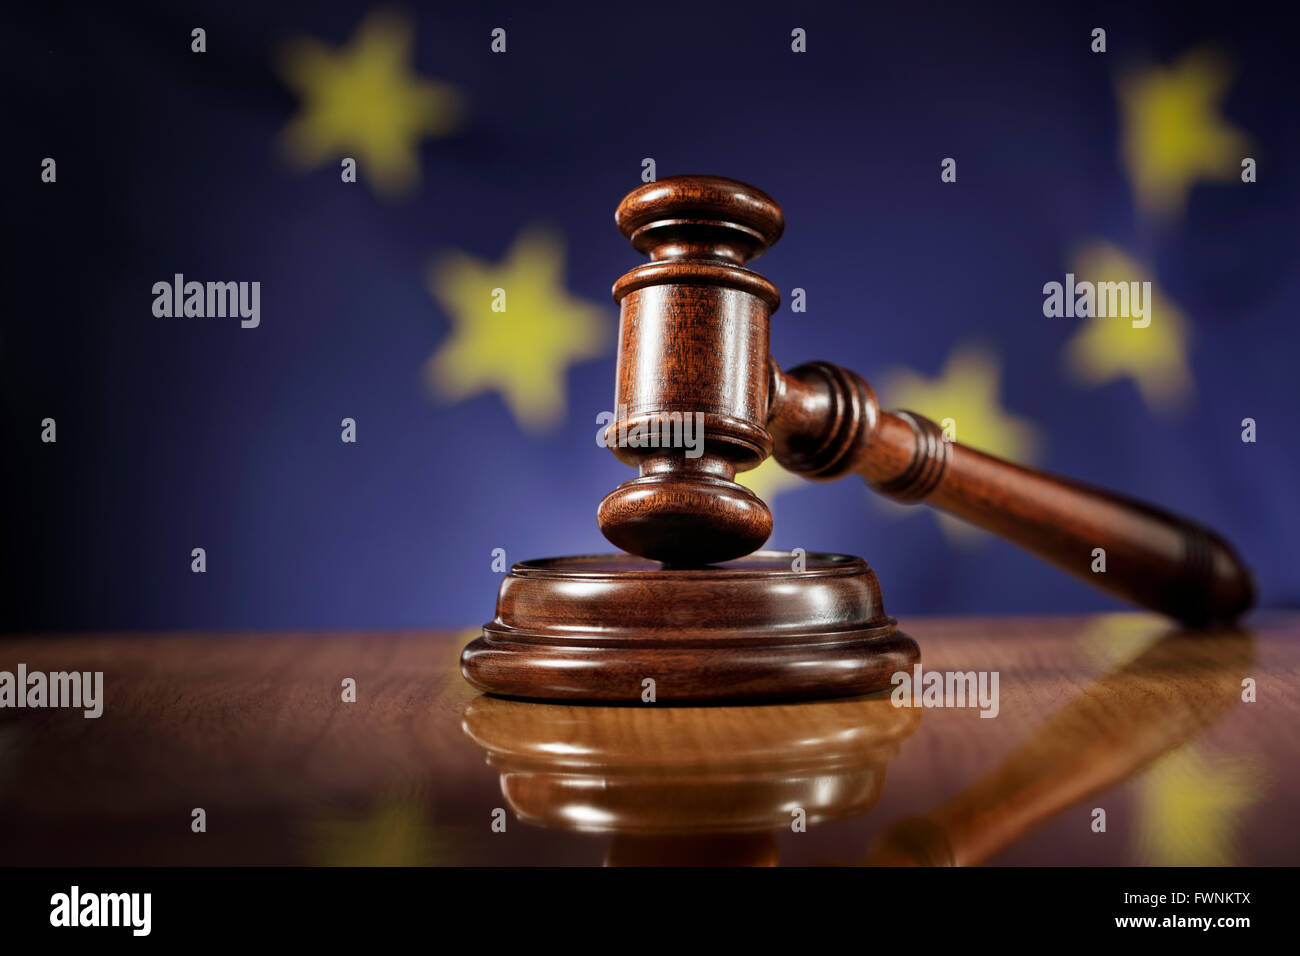 Mahogany wooden gavel on glossy wooden table. Flag of European Union, EU,  in the background. - Stock Image